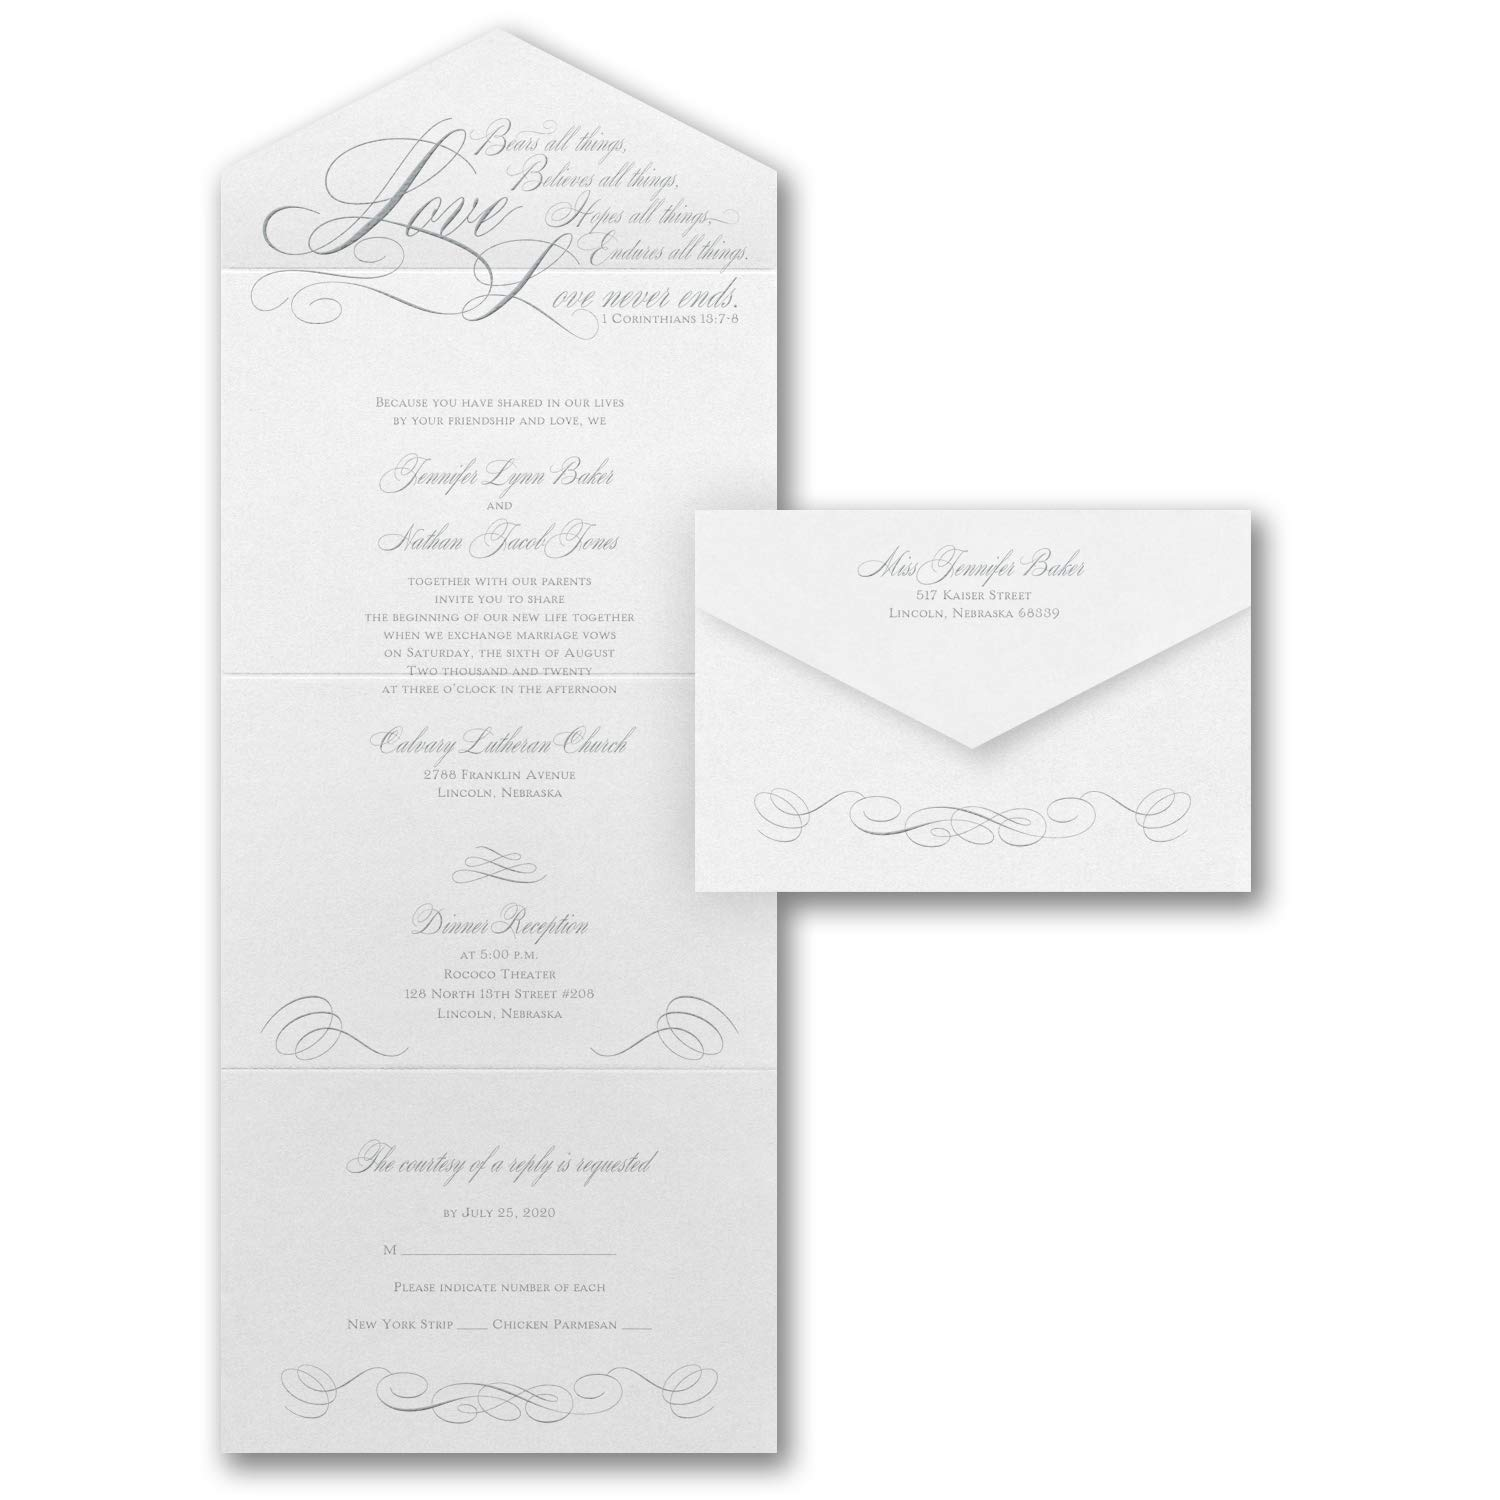 Seal And Send Wedding Invitations.Amazon Com 1225pk Love Never Ends Seal N Send Wedding